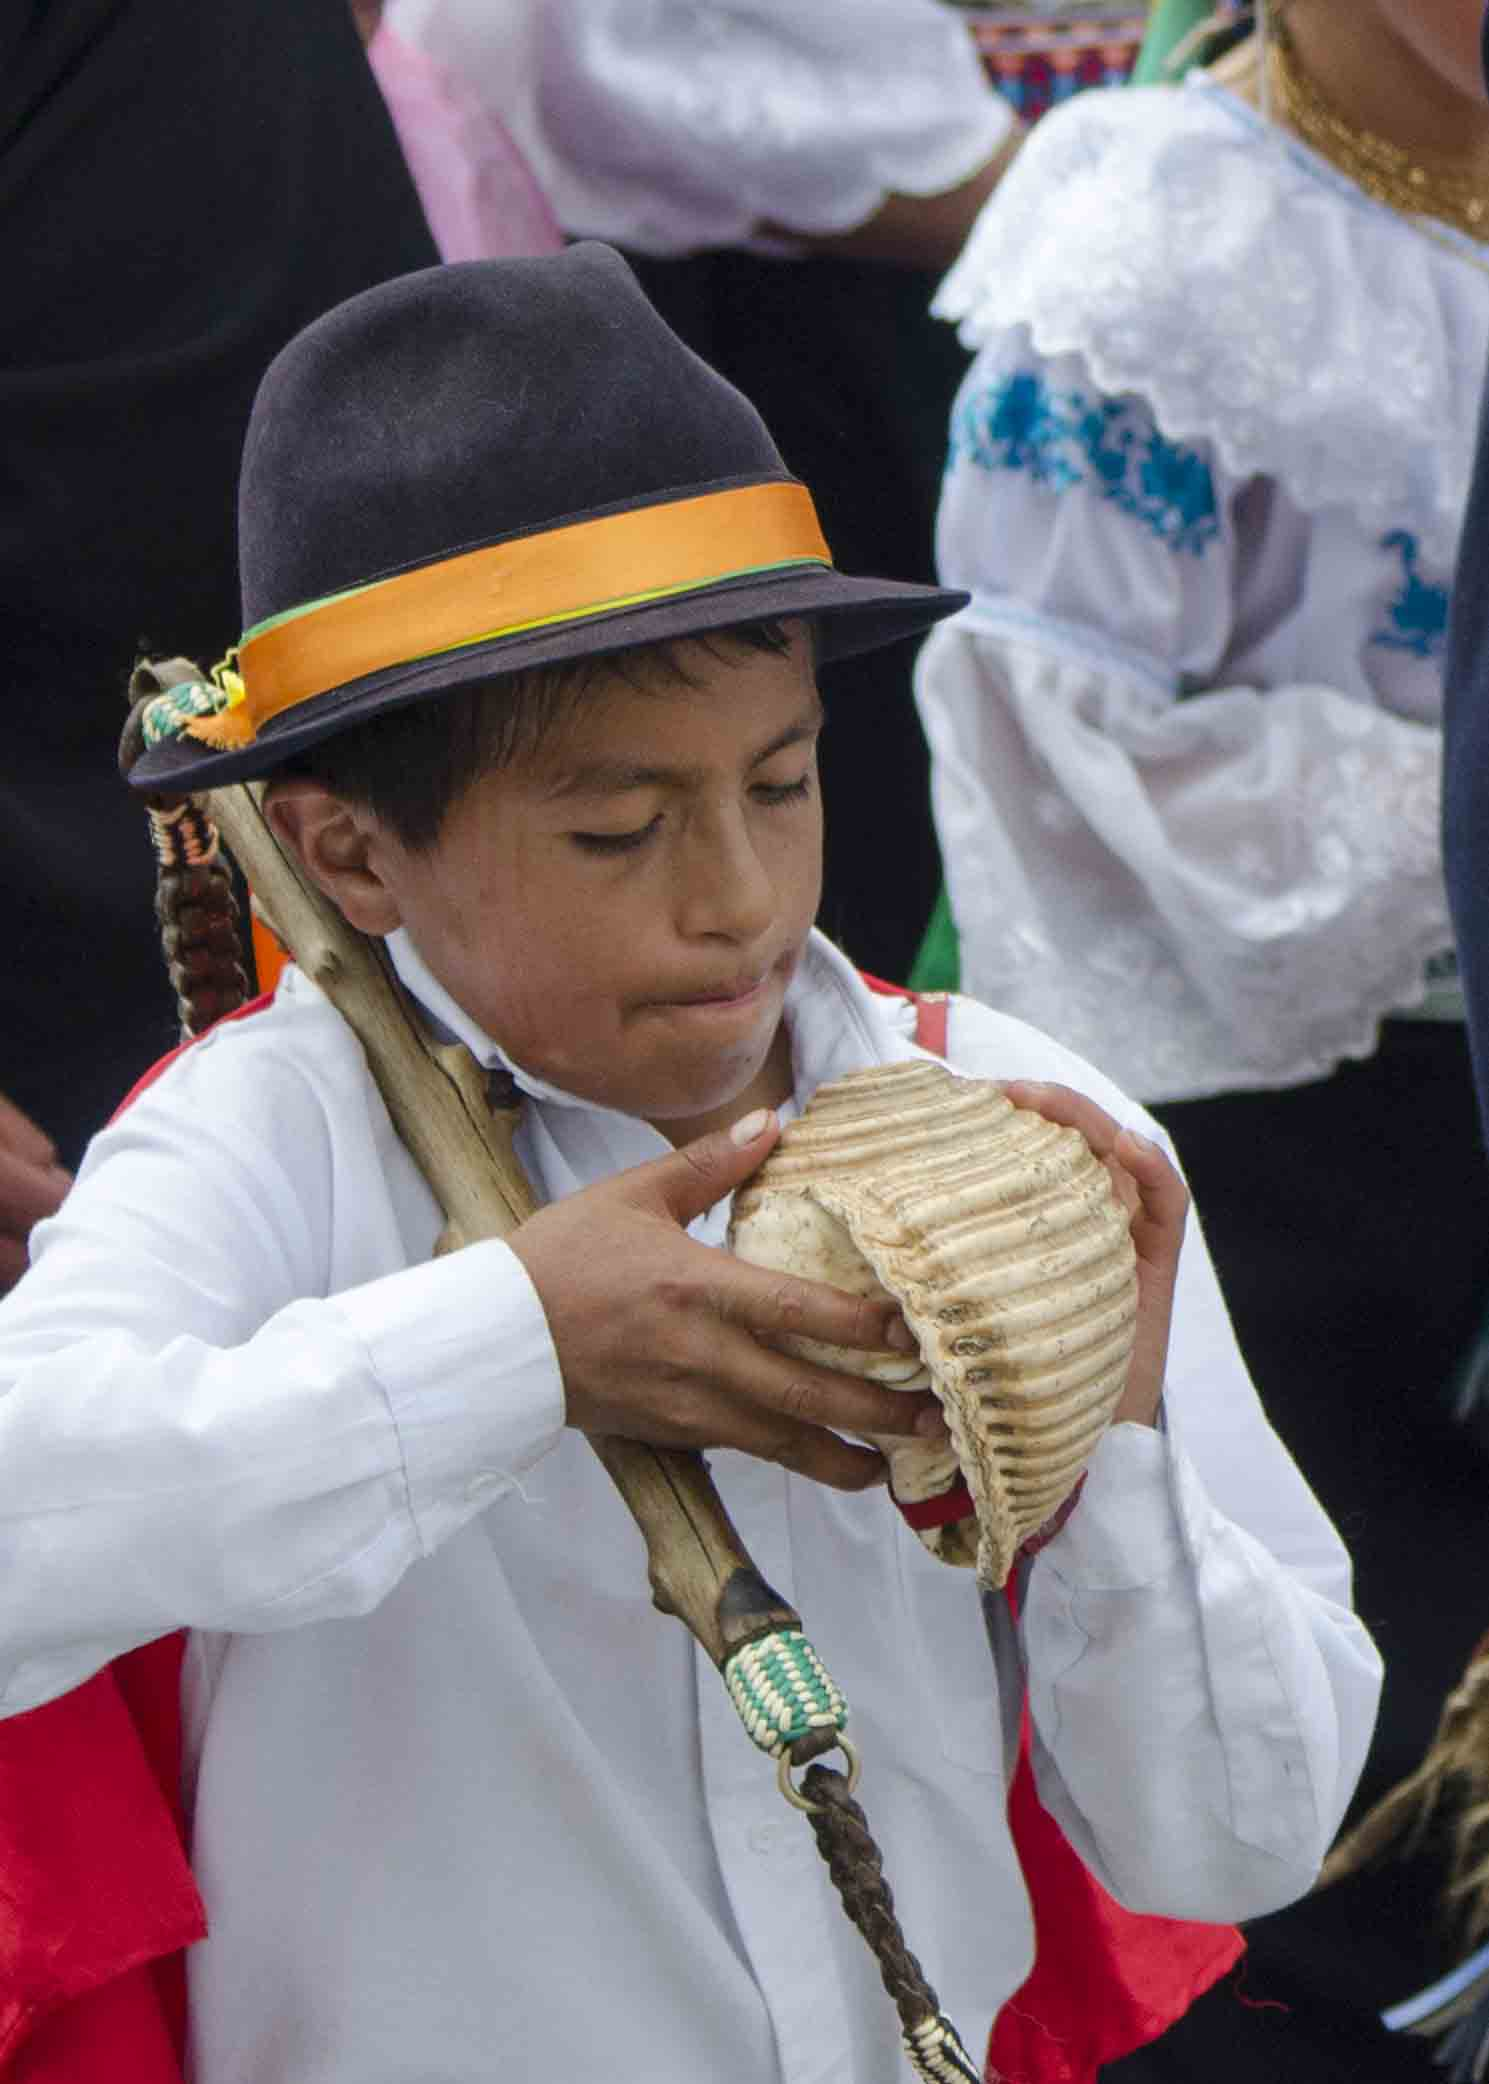 Preparing to Blow the Conch Shell, Inti Raymi, Parade of Schools, Cotachi, Ecuador